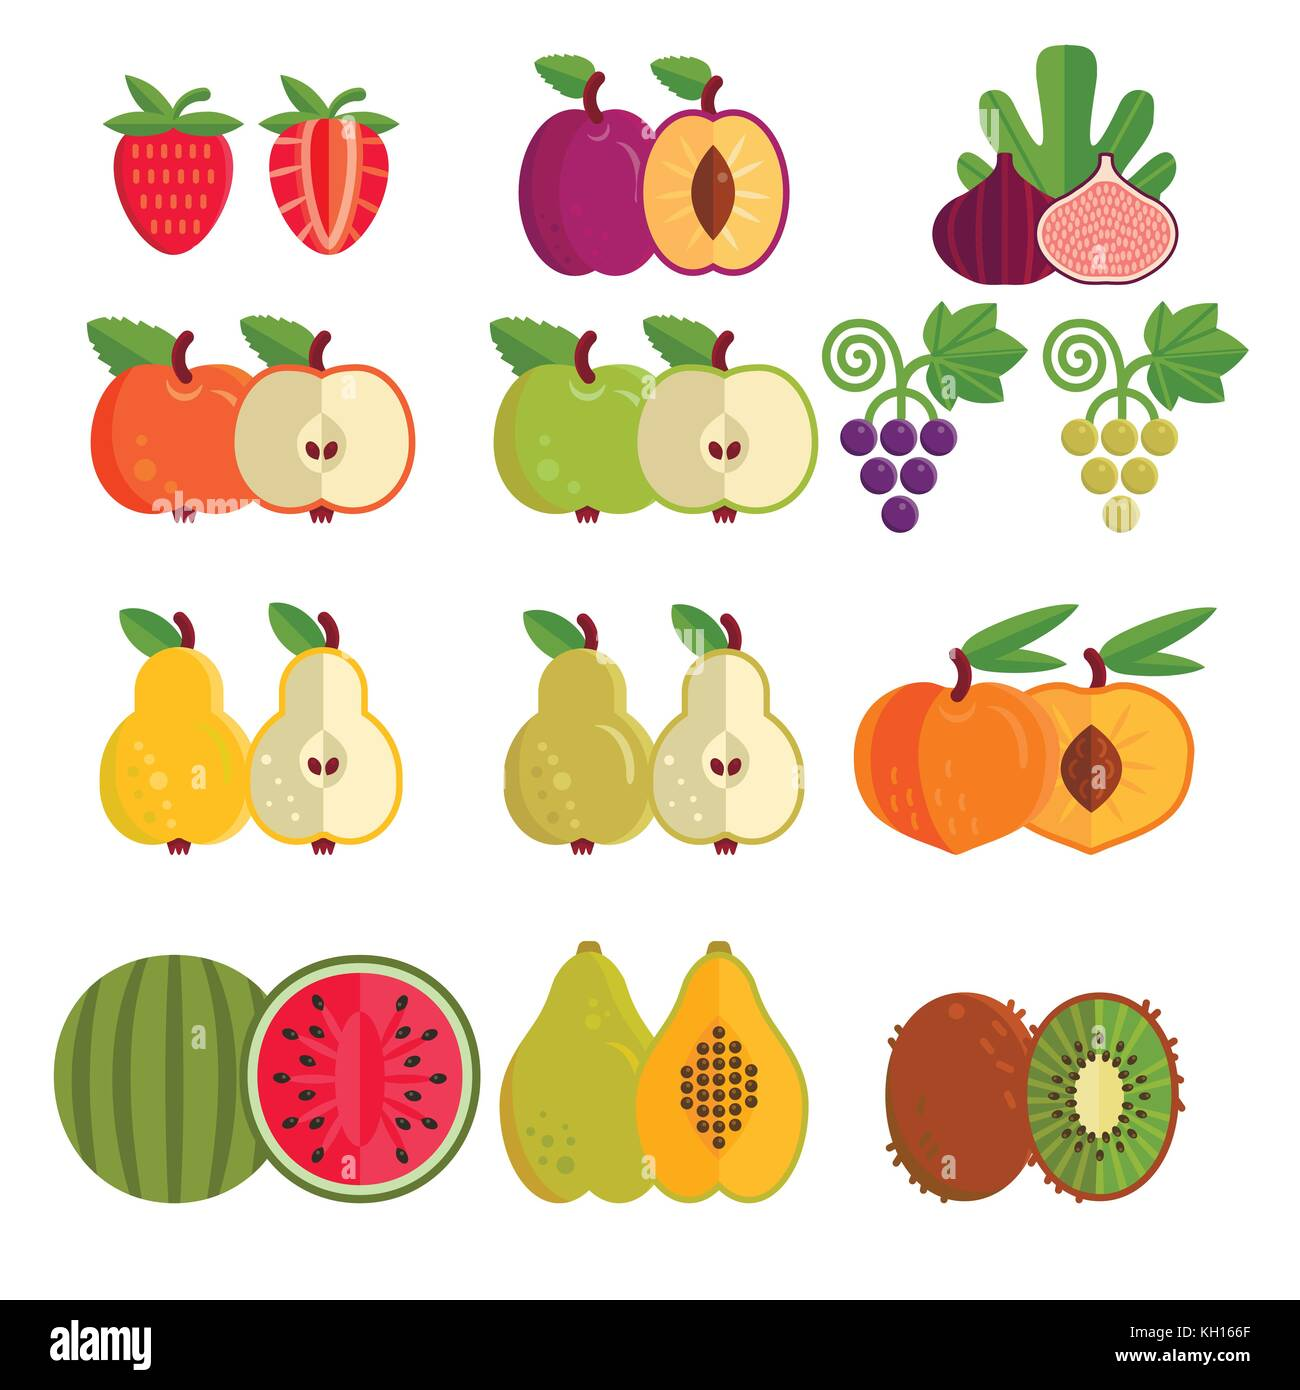 vector collection of fruits all objects are conveniently grouped